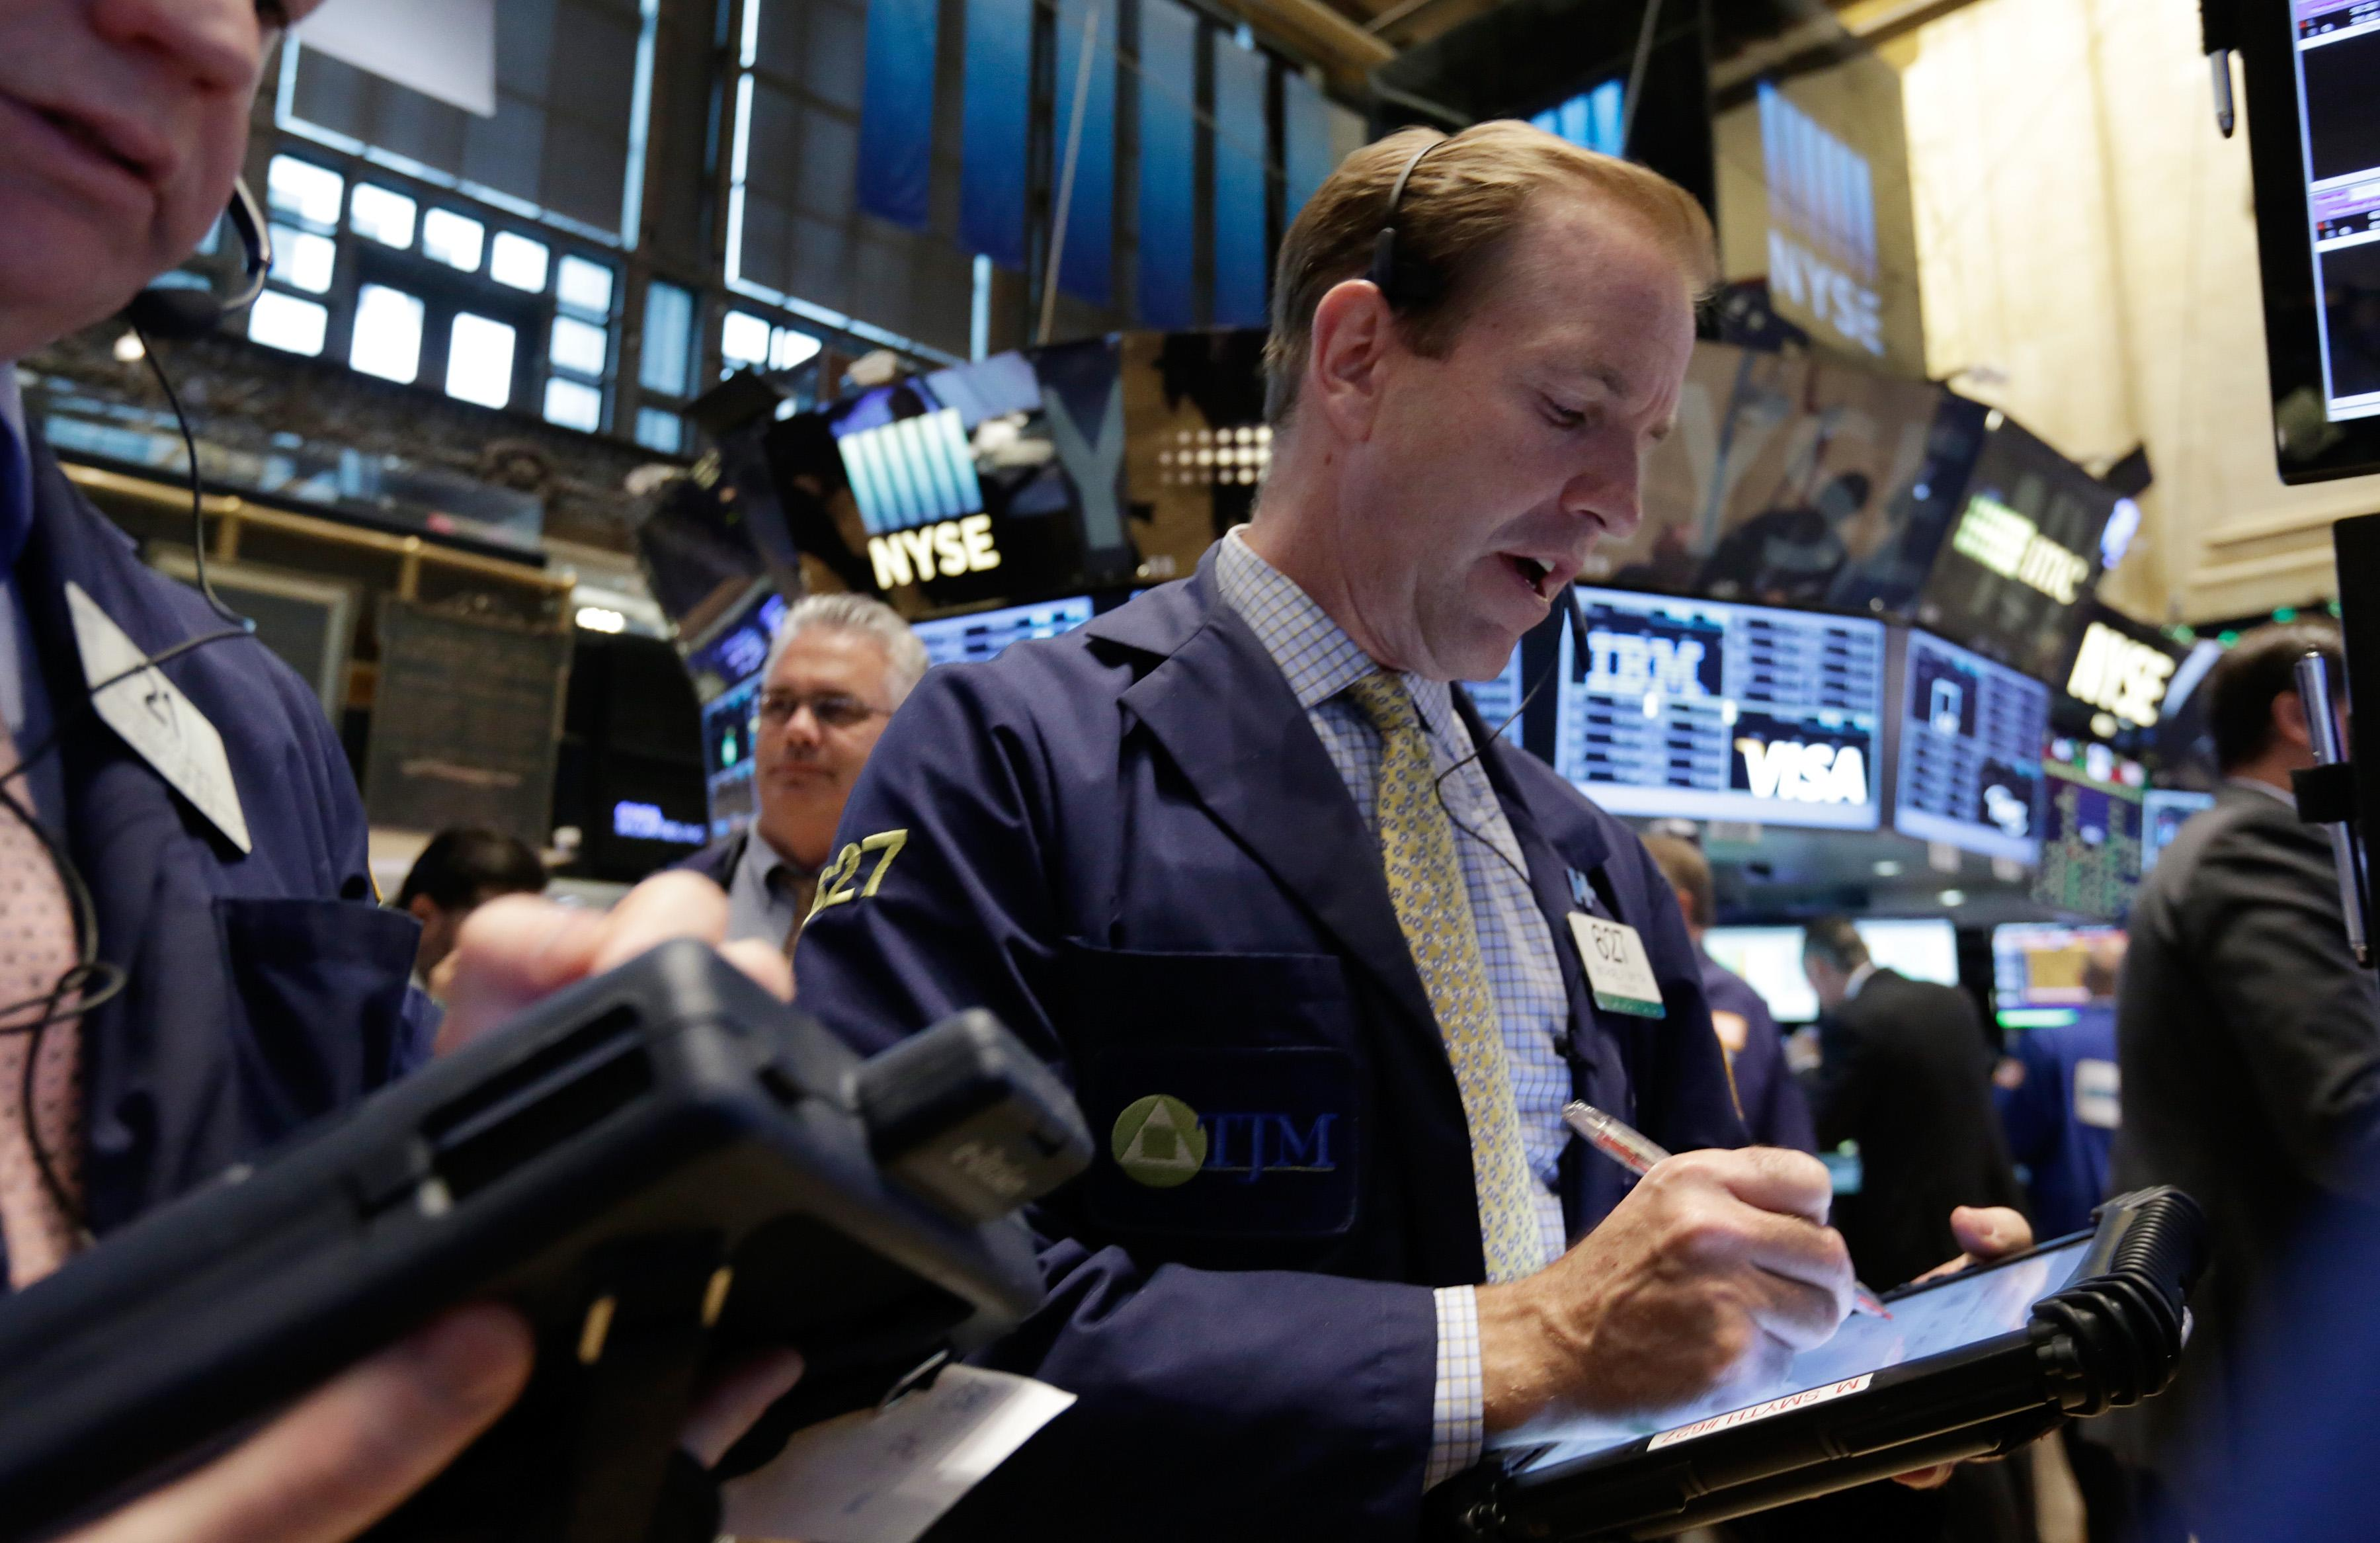 China stocks rebound, other Asian markets fall after US drop